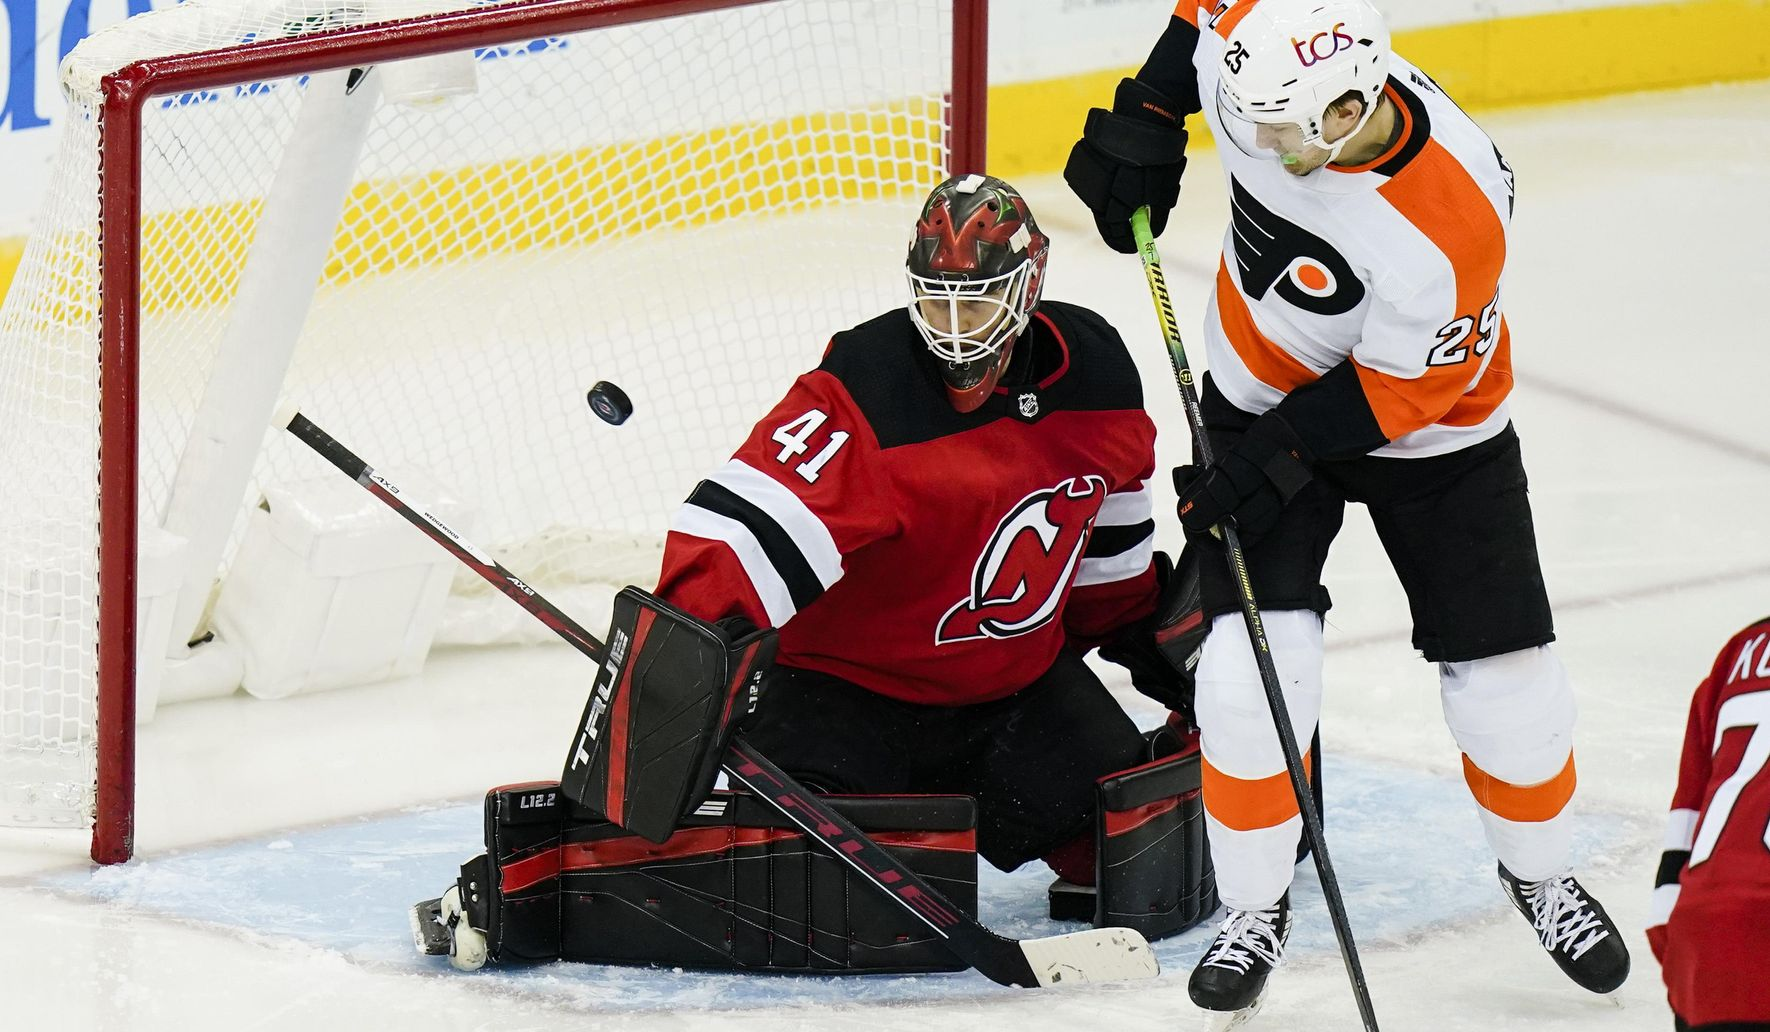 Flyers_devils_hockey_37350_c0-155-3695-2309_s1770x1032